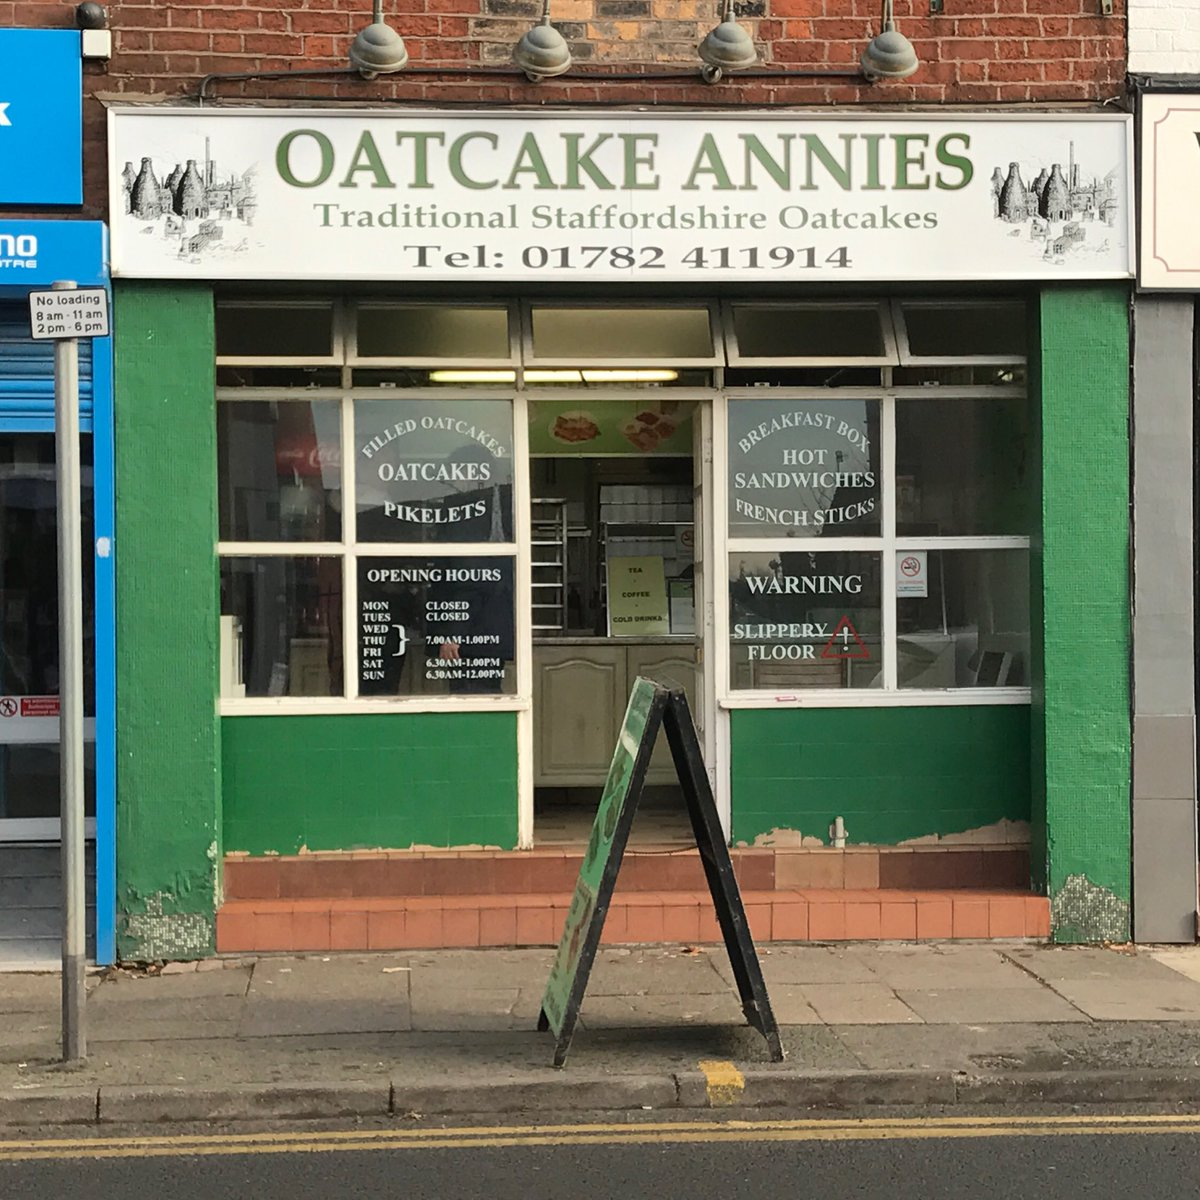 Annie, are you oatcake? https://t.co/694YVxFe3x